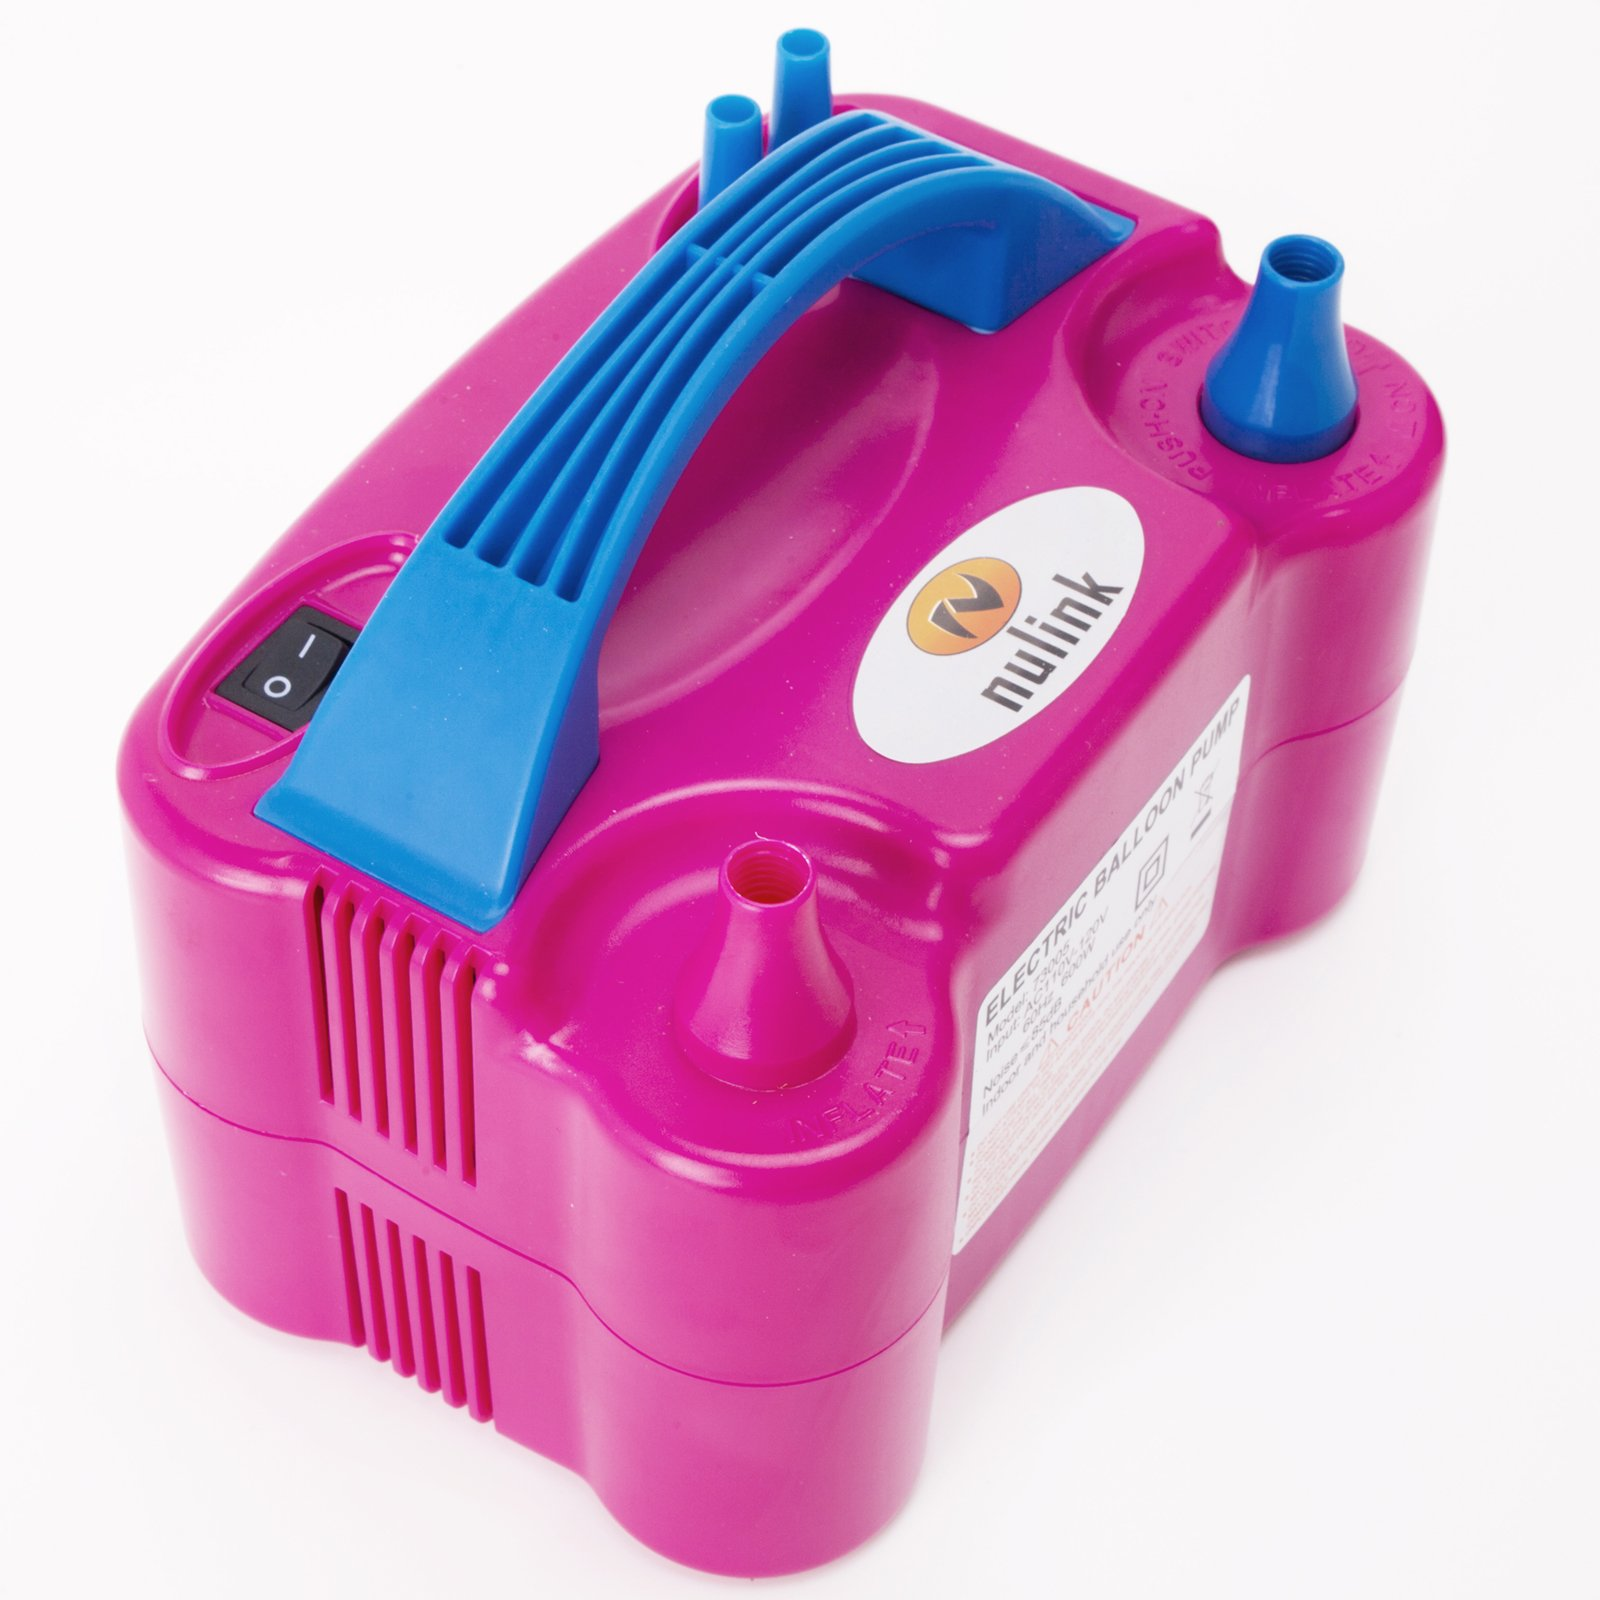 Nulink Electric Portable Dual Nozzle Balloon Blower Pump Inflation for Decoration, Party, Sport [110V~120V, 600W, Pink]